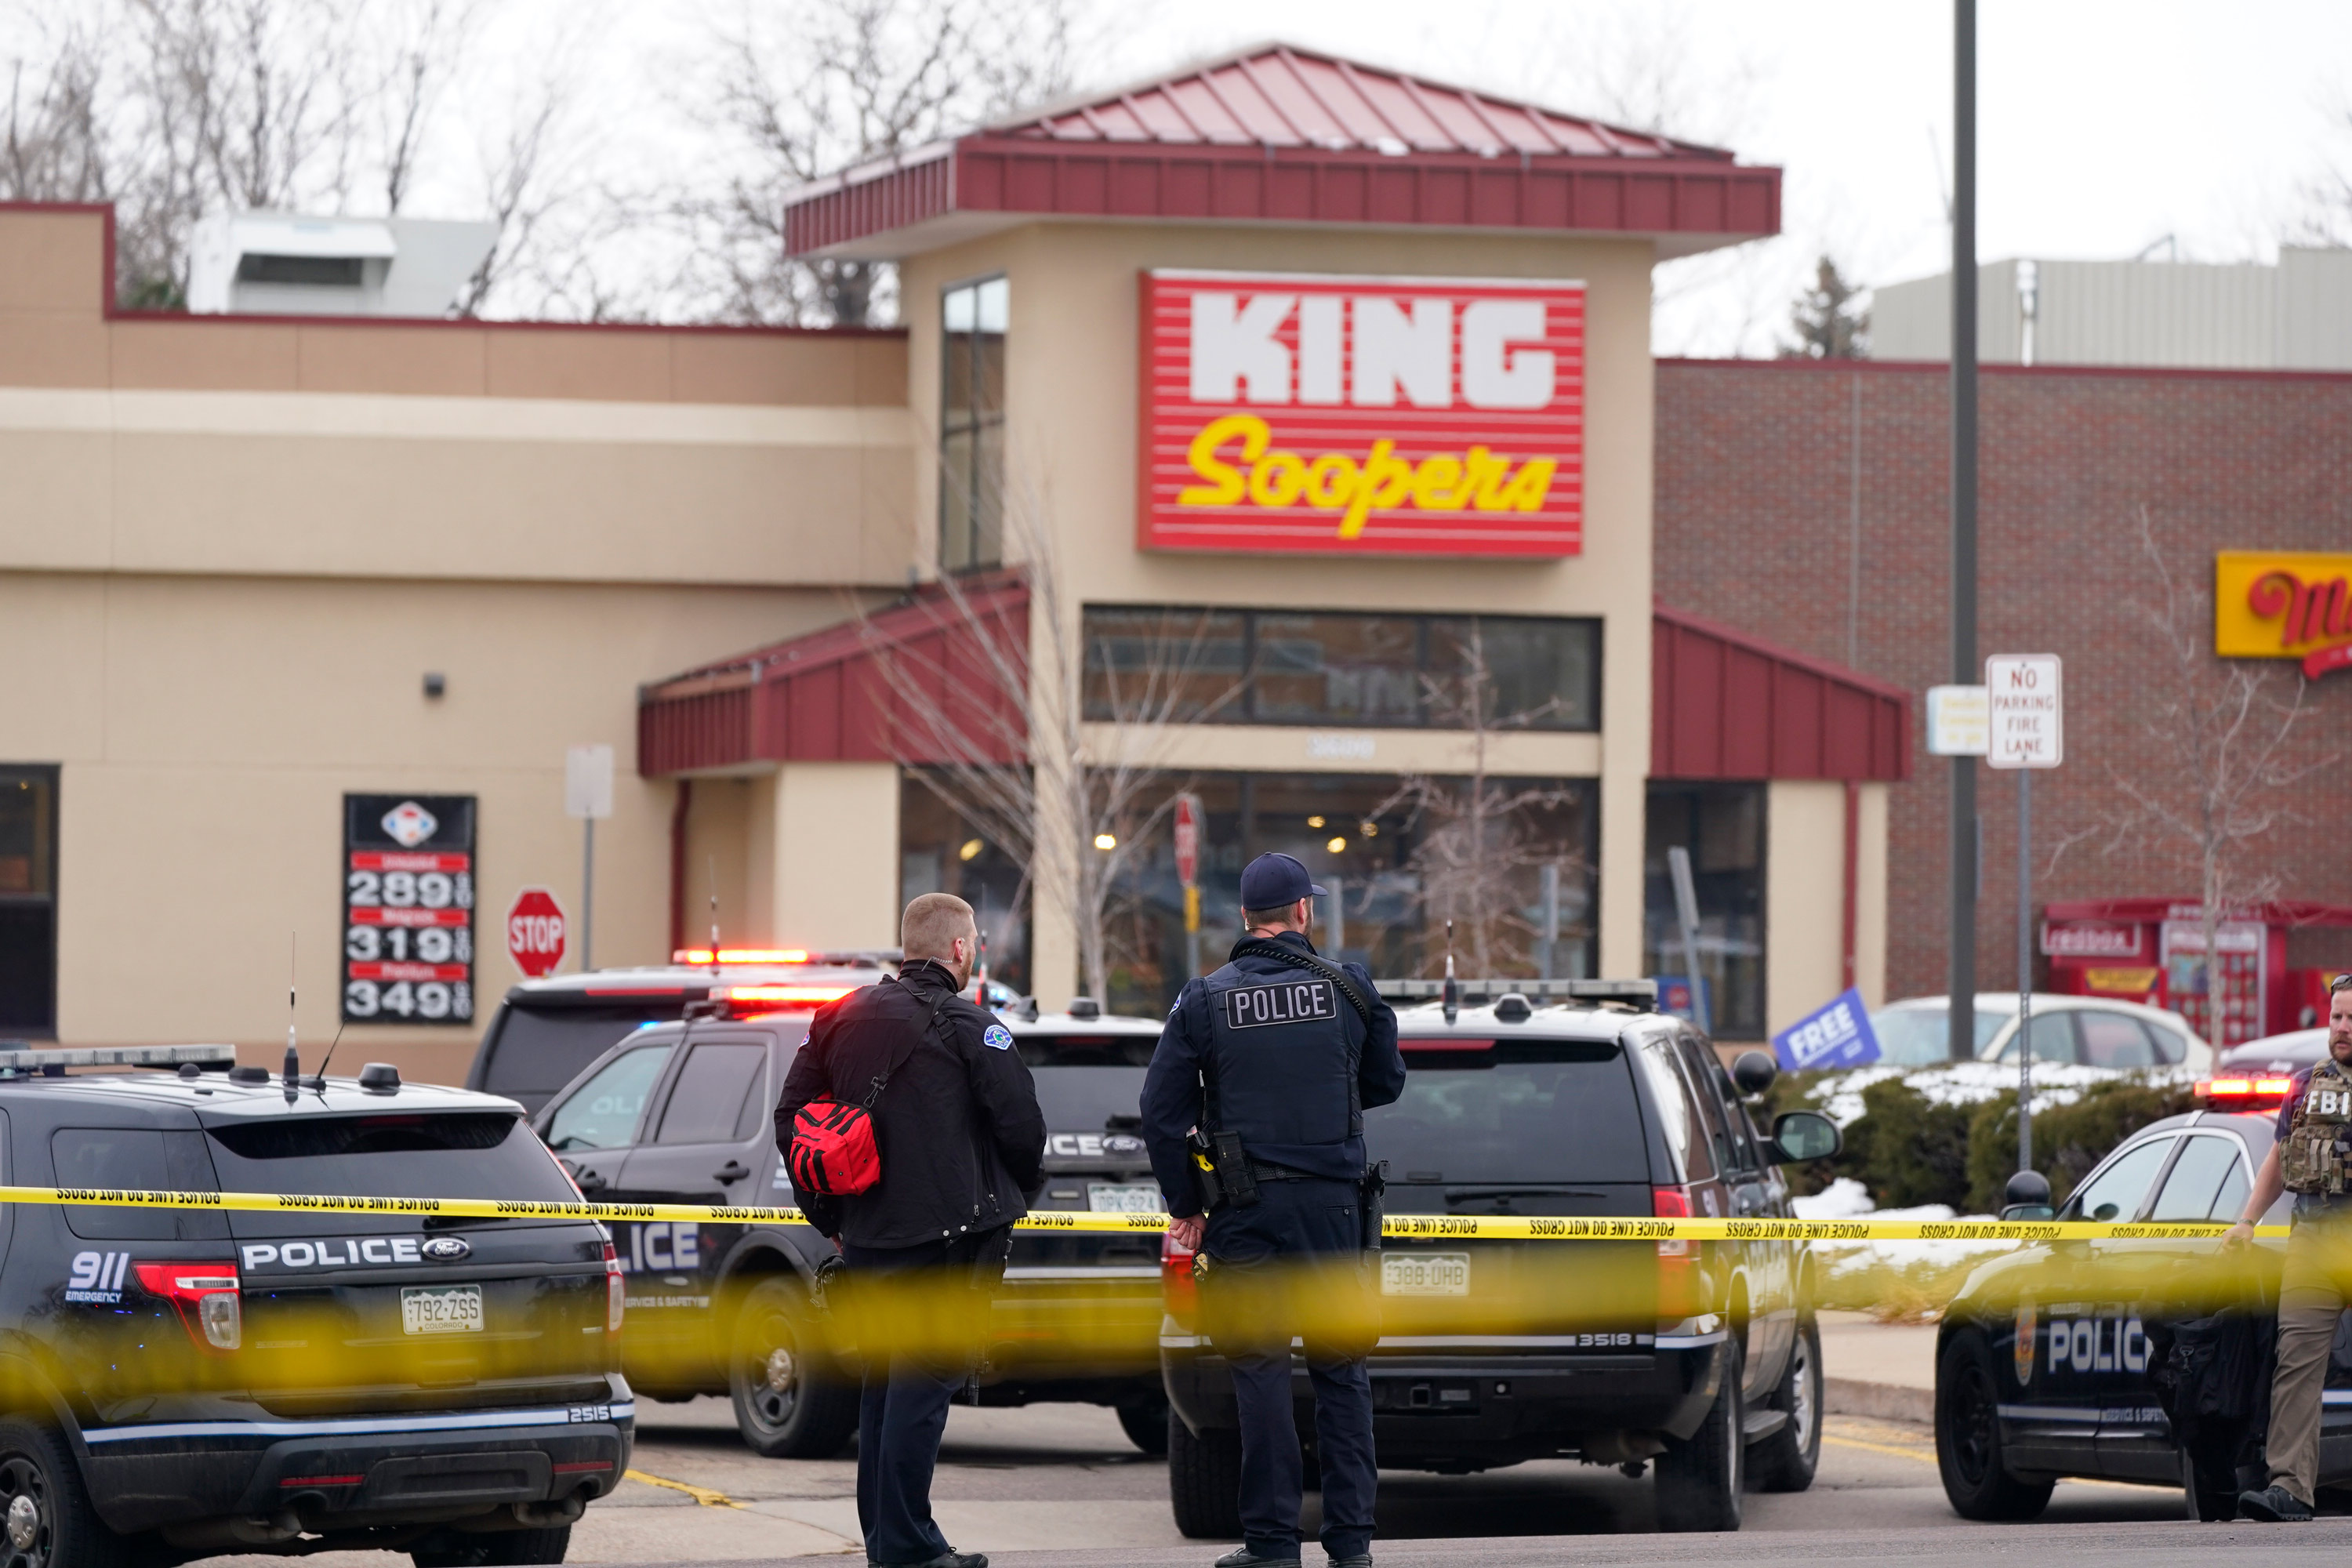 Police stand outside a King Soopers grocery store where a shooting took place on March 22 in Boulder, Colorado.